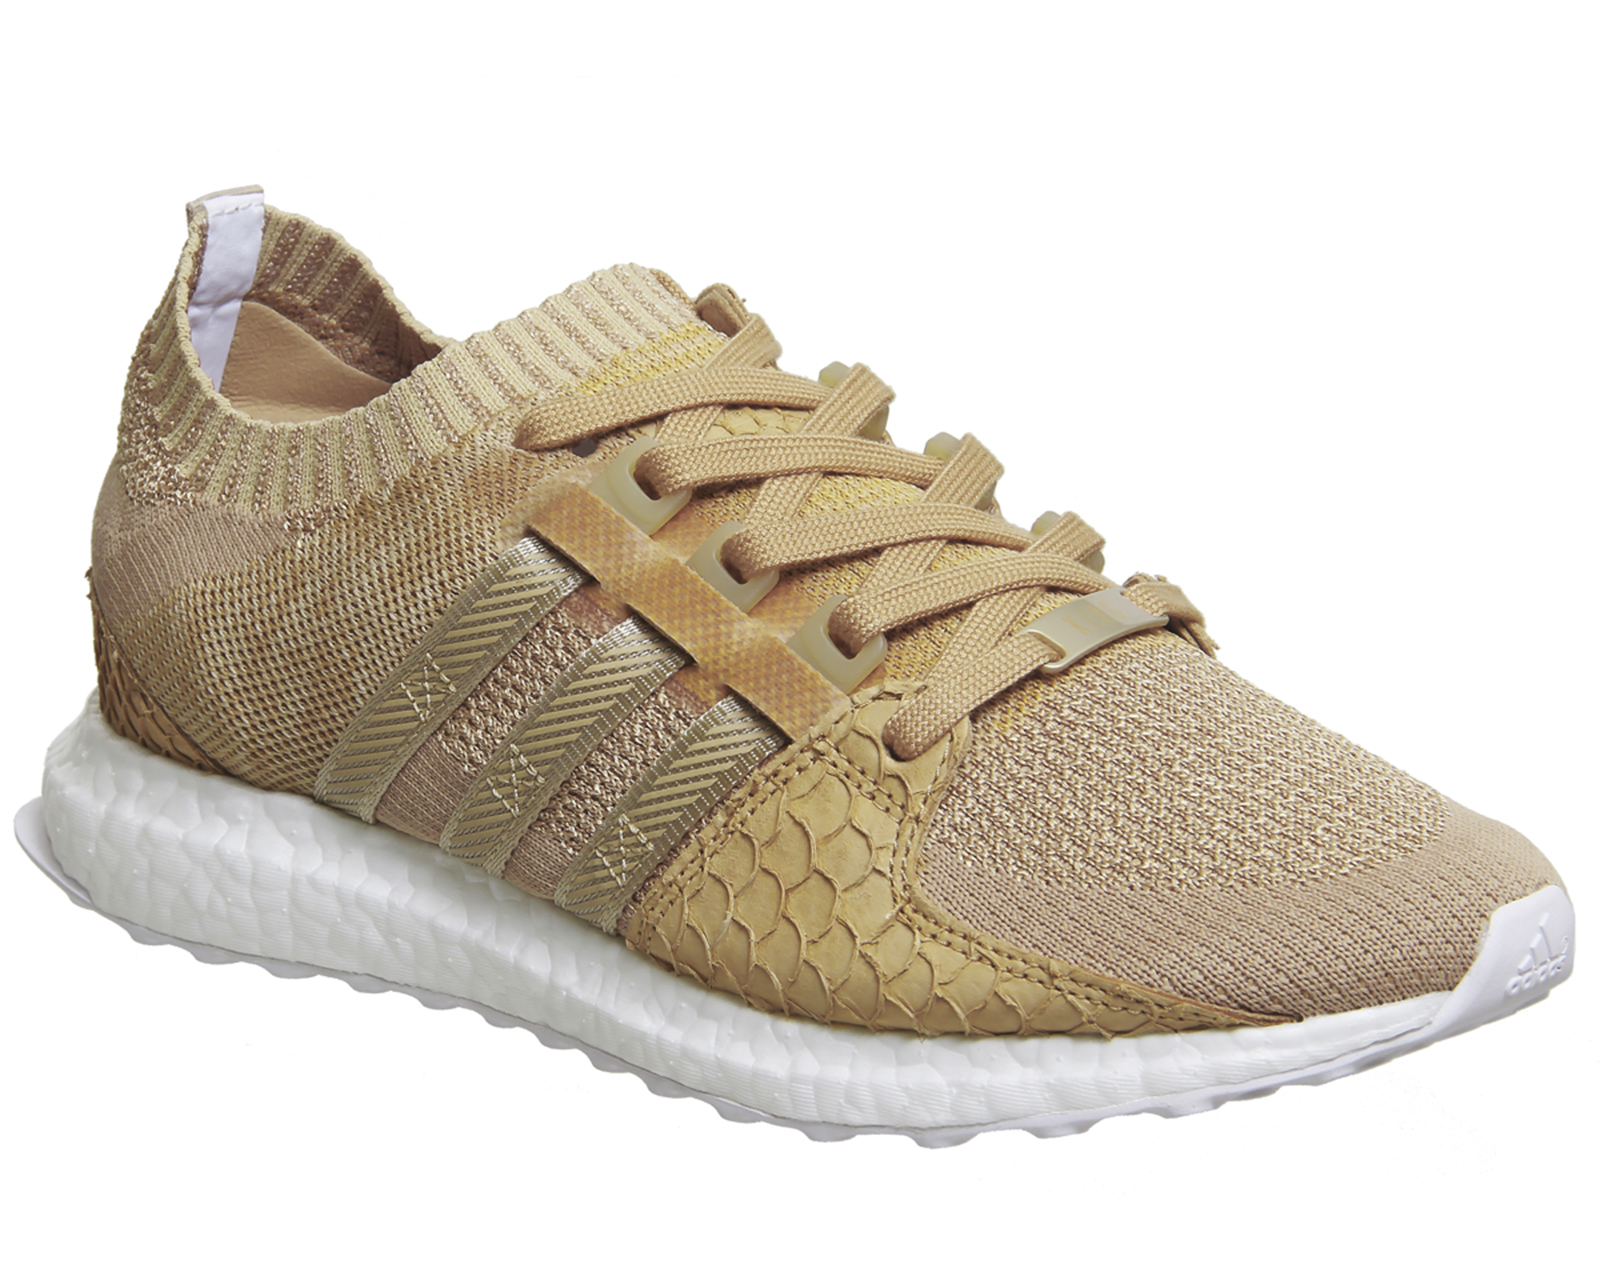 on sale 860d8 45dc1 ... purchase wÄchter adidas eqt support ultra dwele t brown bag trainer  schuhe 8d7f3 e3337